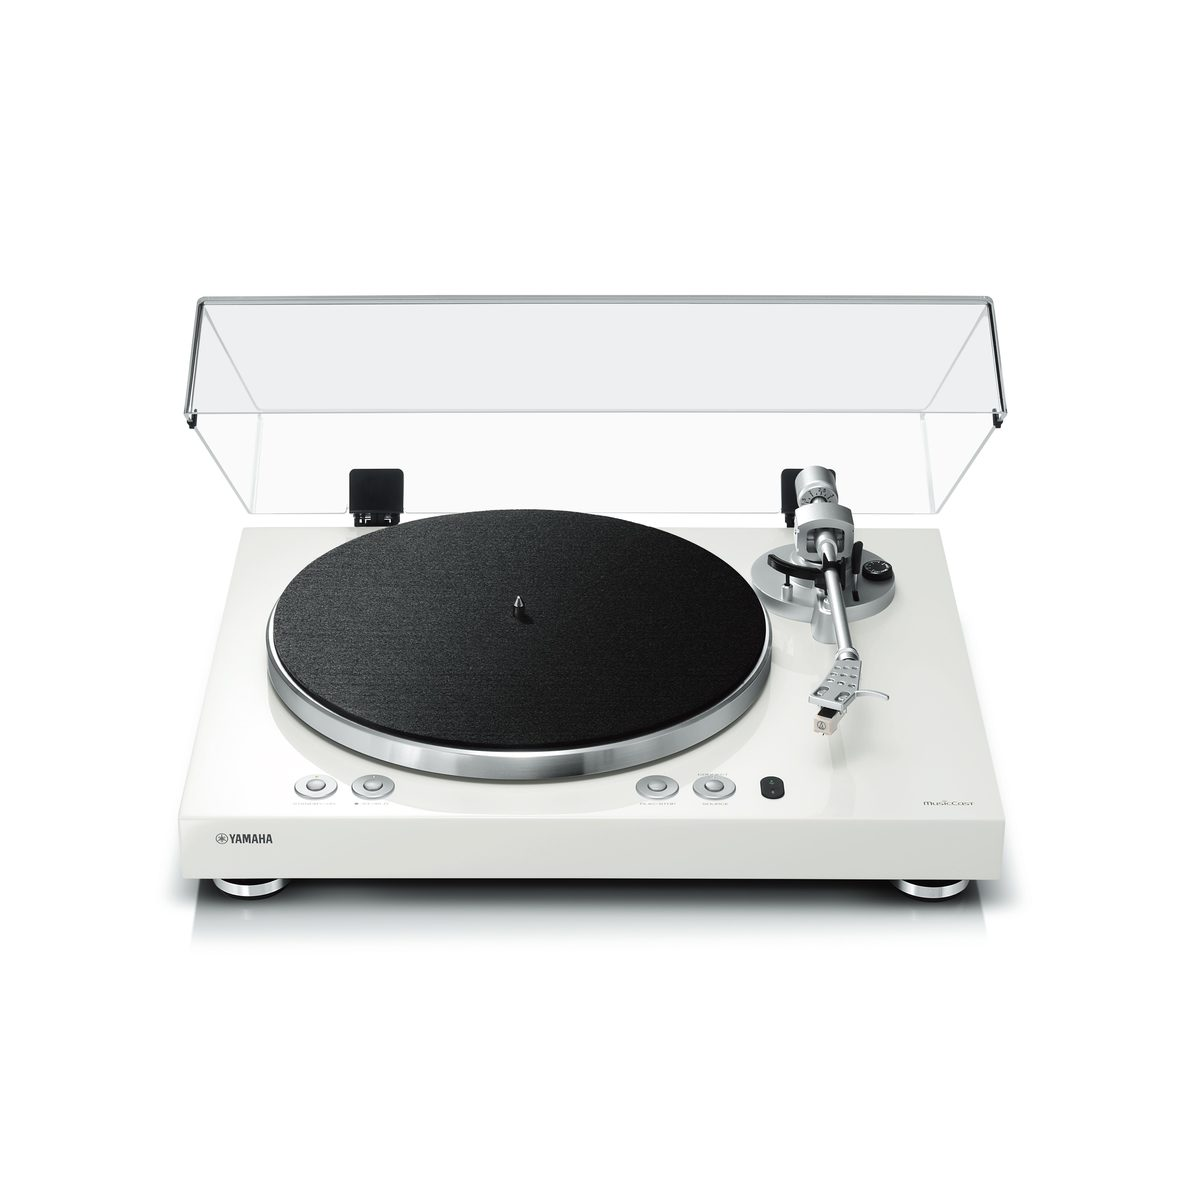 Compare retail prices of YAMAHA MUSICCAST VINYL 500 WHITE MusicCast VINYL 500 Wireless Turntable, White to get the best deal online